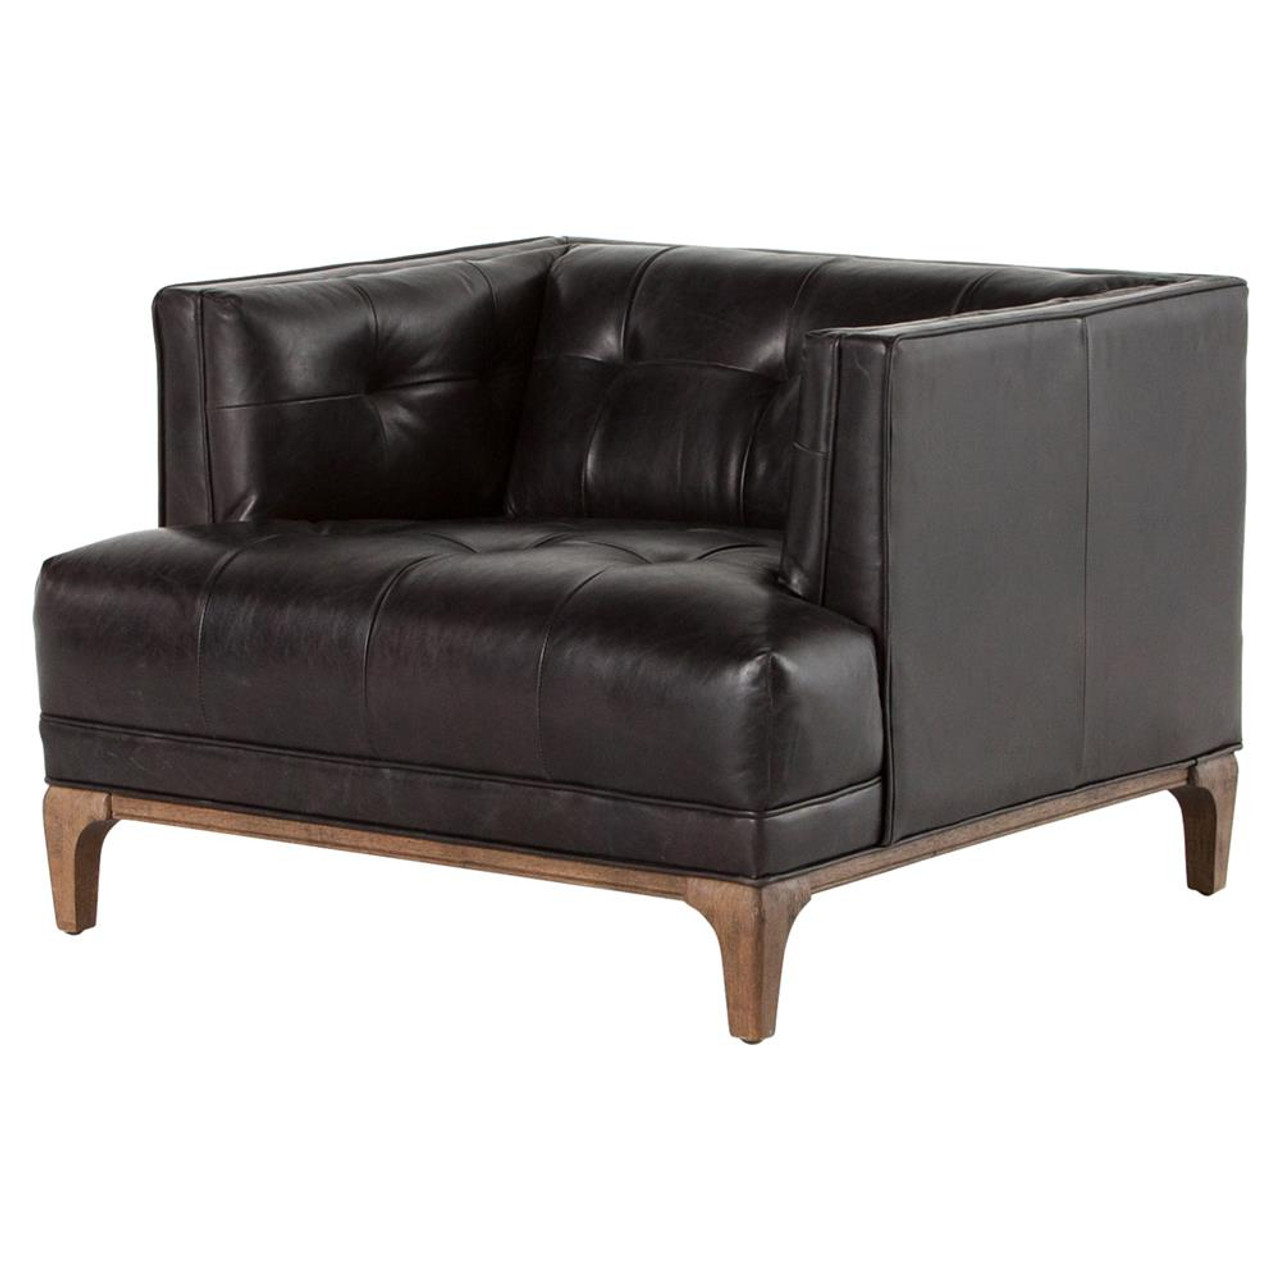 Dylan Mid Century Modern Tufted Black Leather Chair